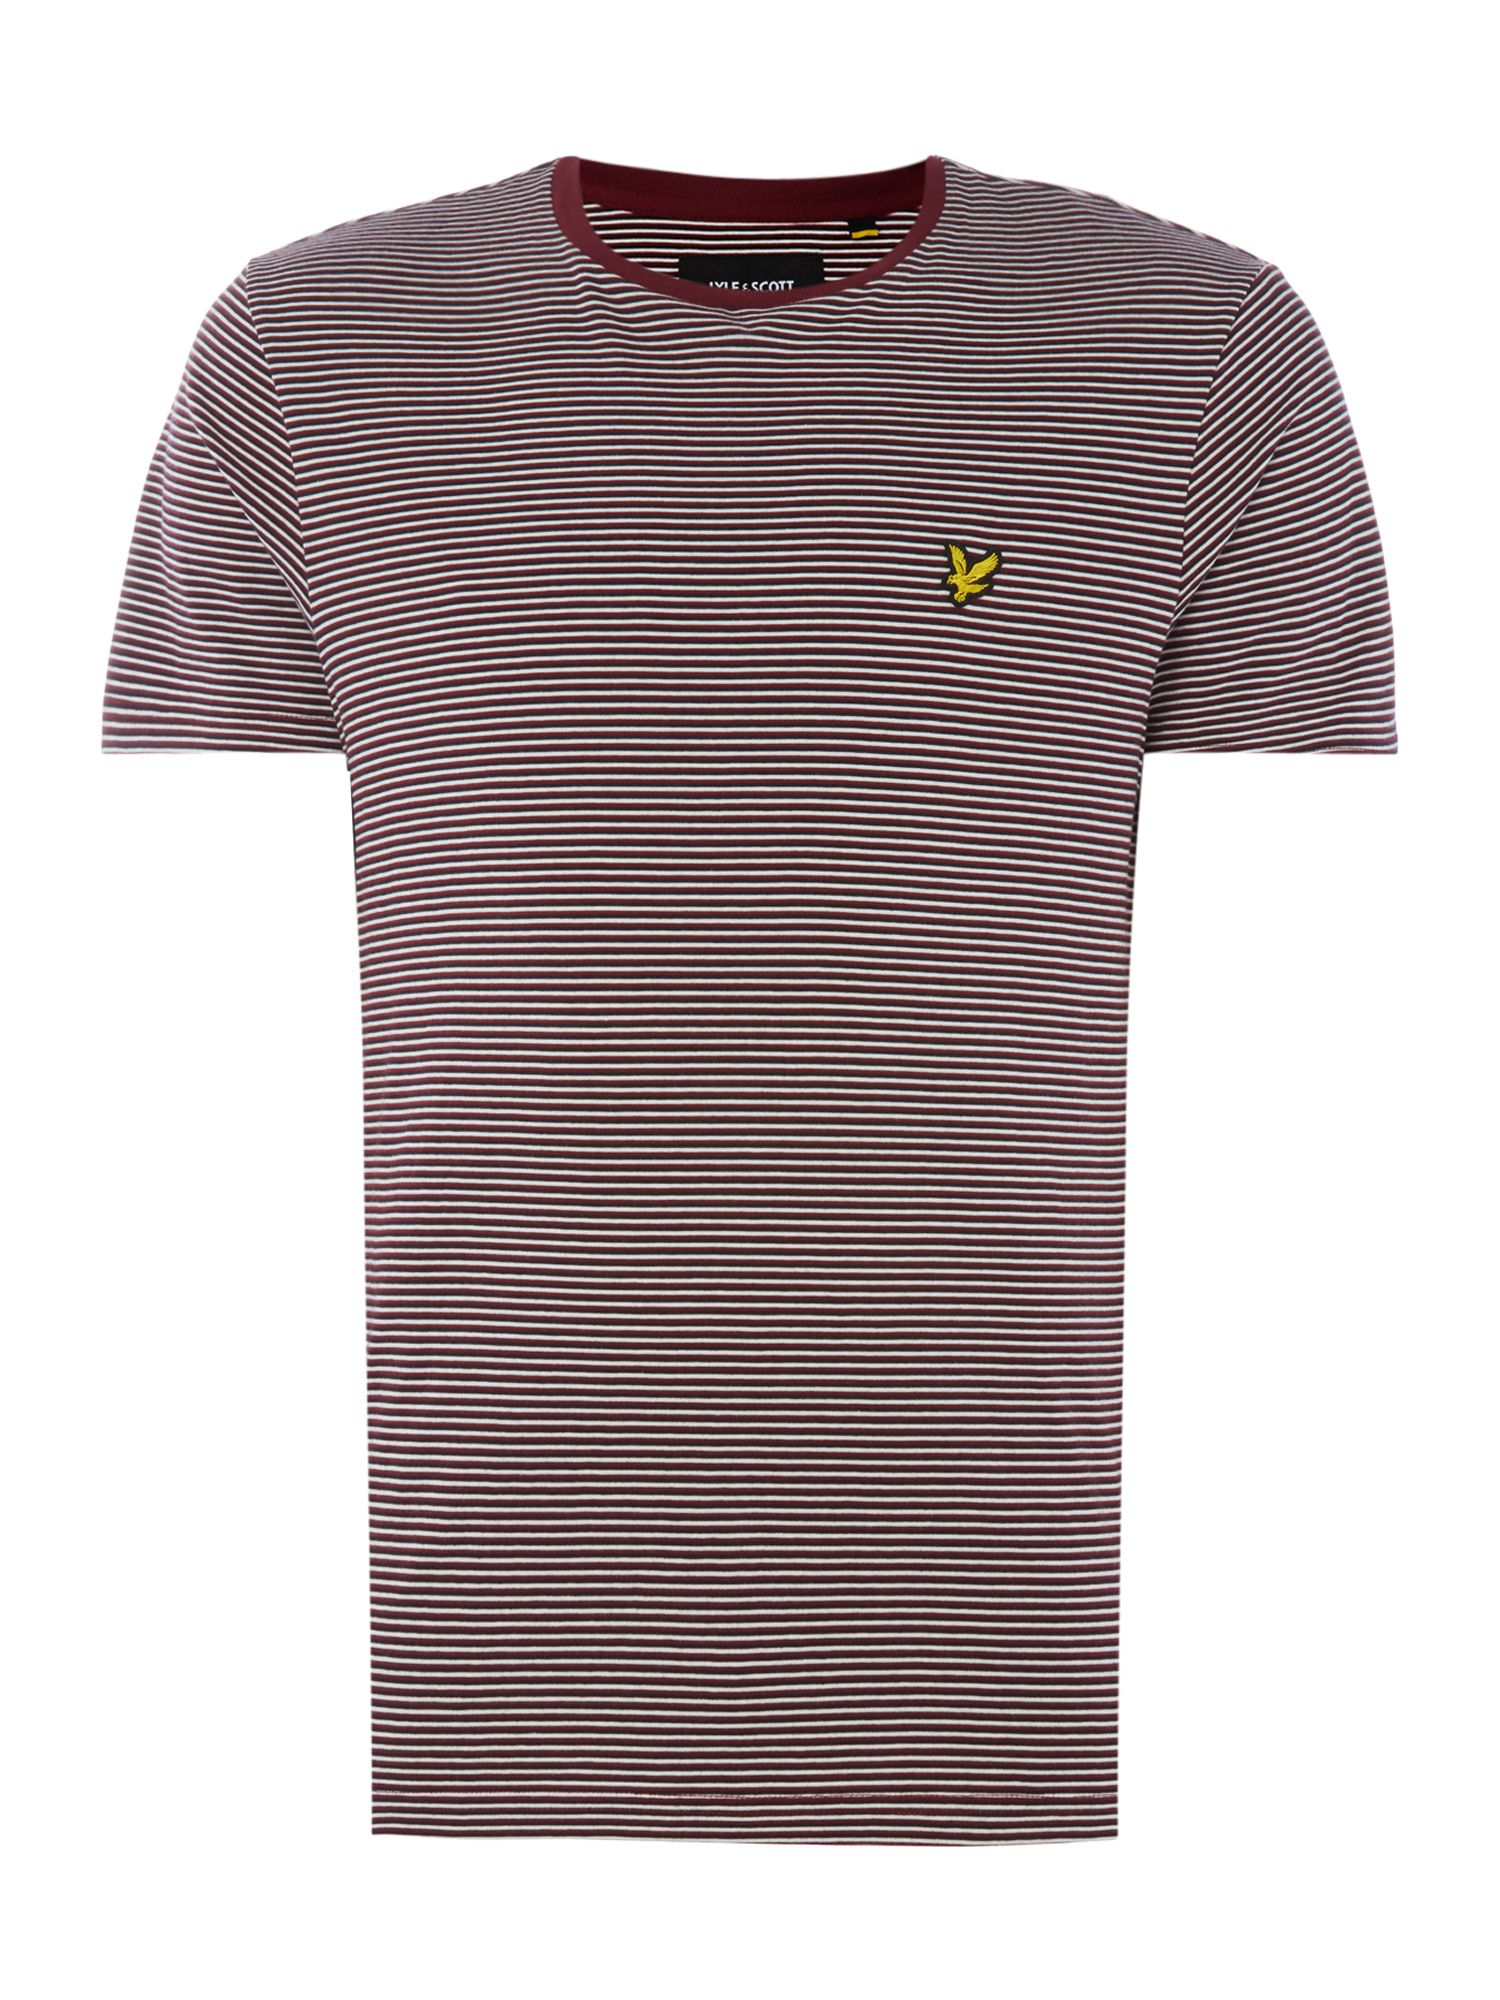 Men's Lyle and Scott Feeder stripe short sleeve tshirt, Claret